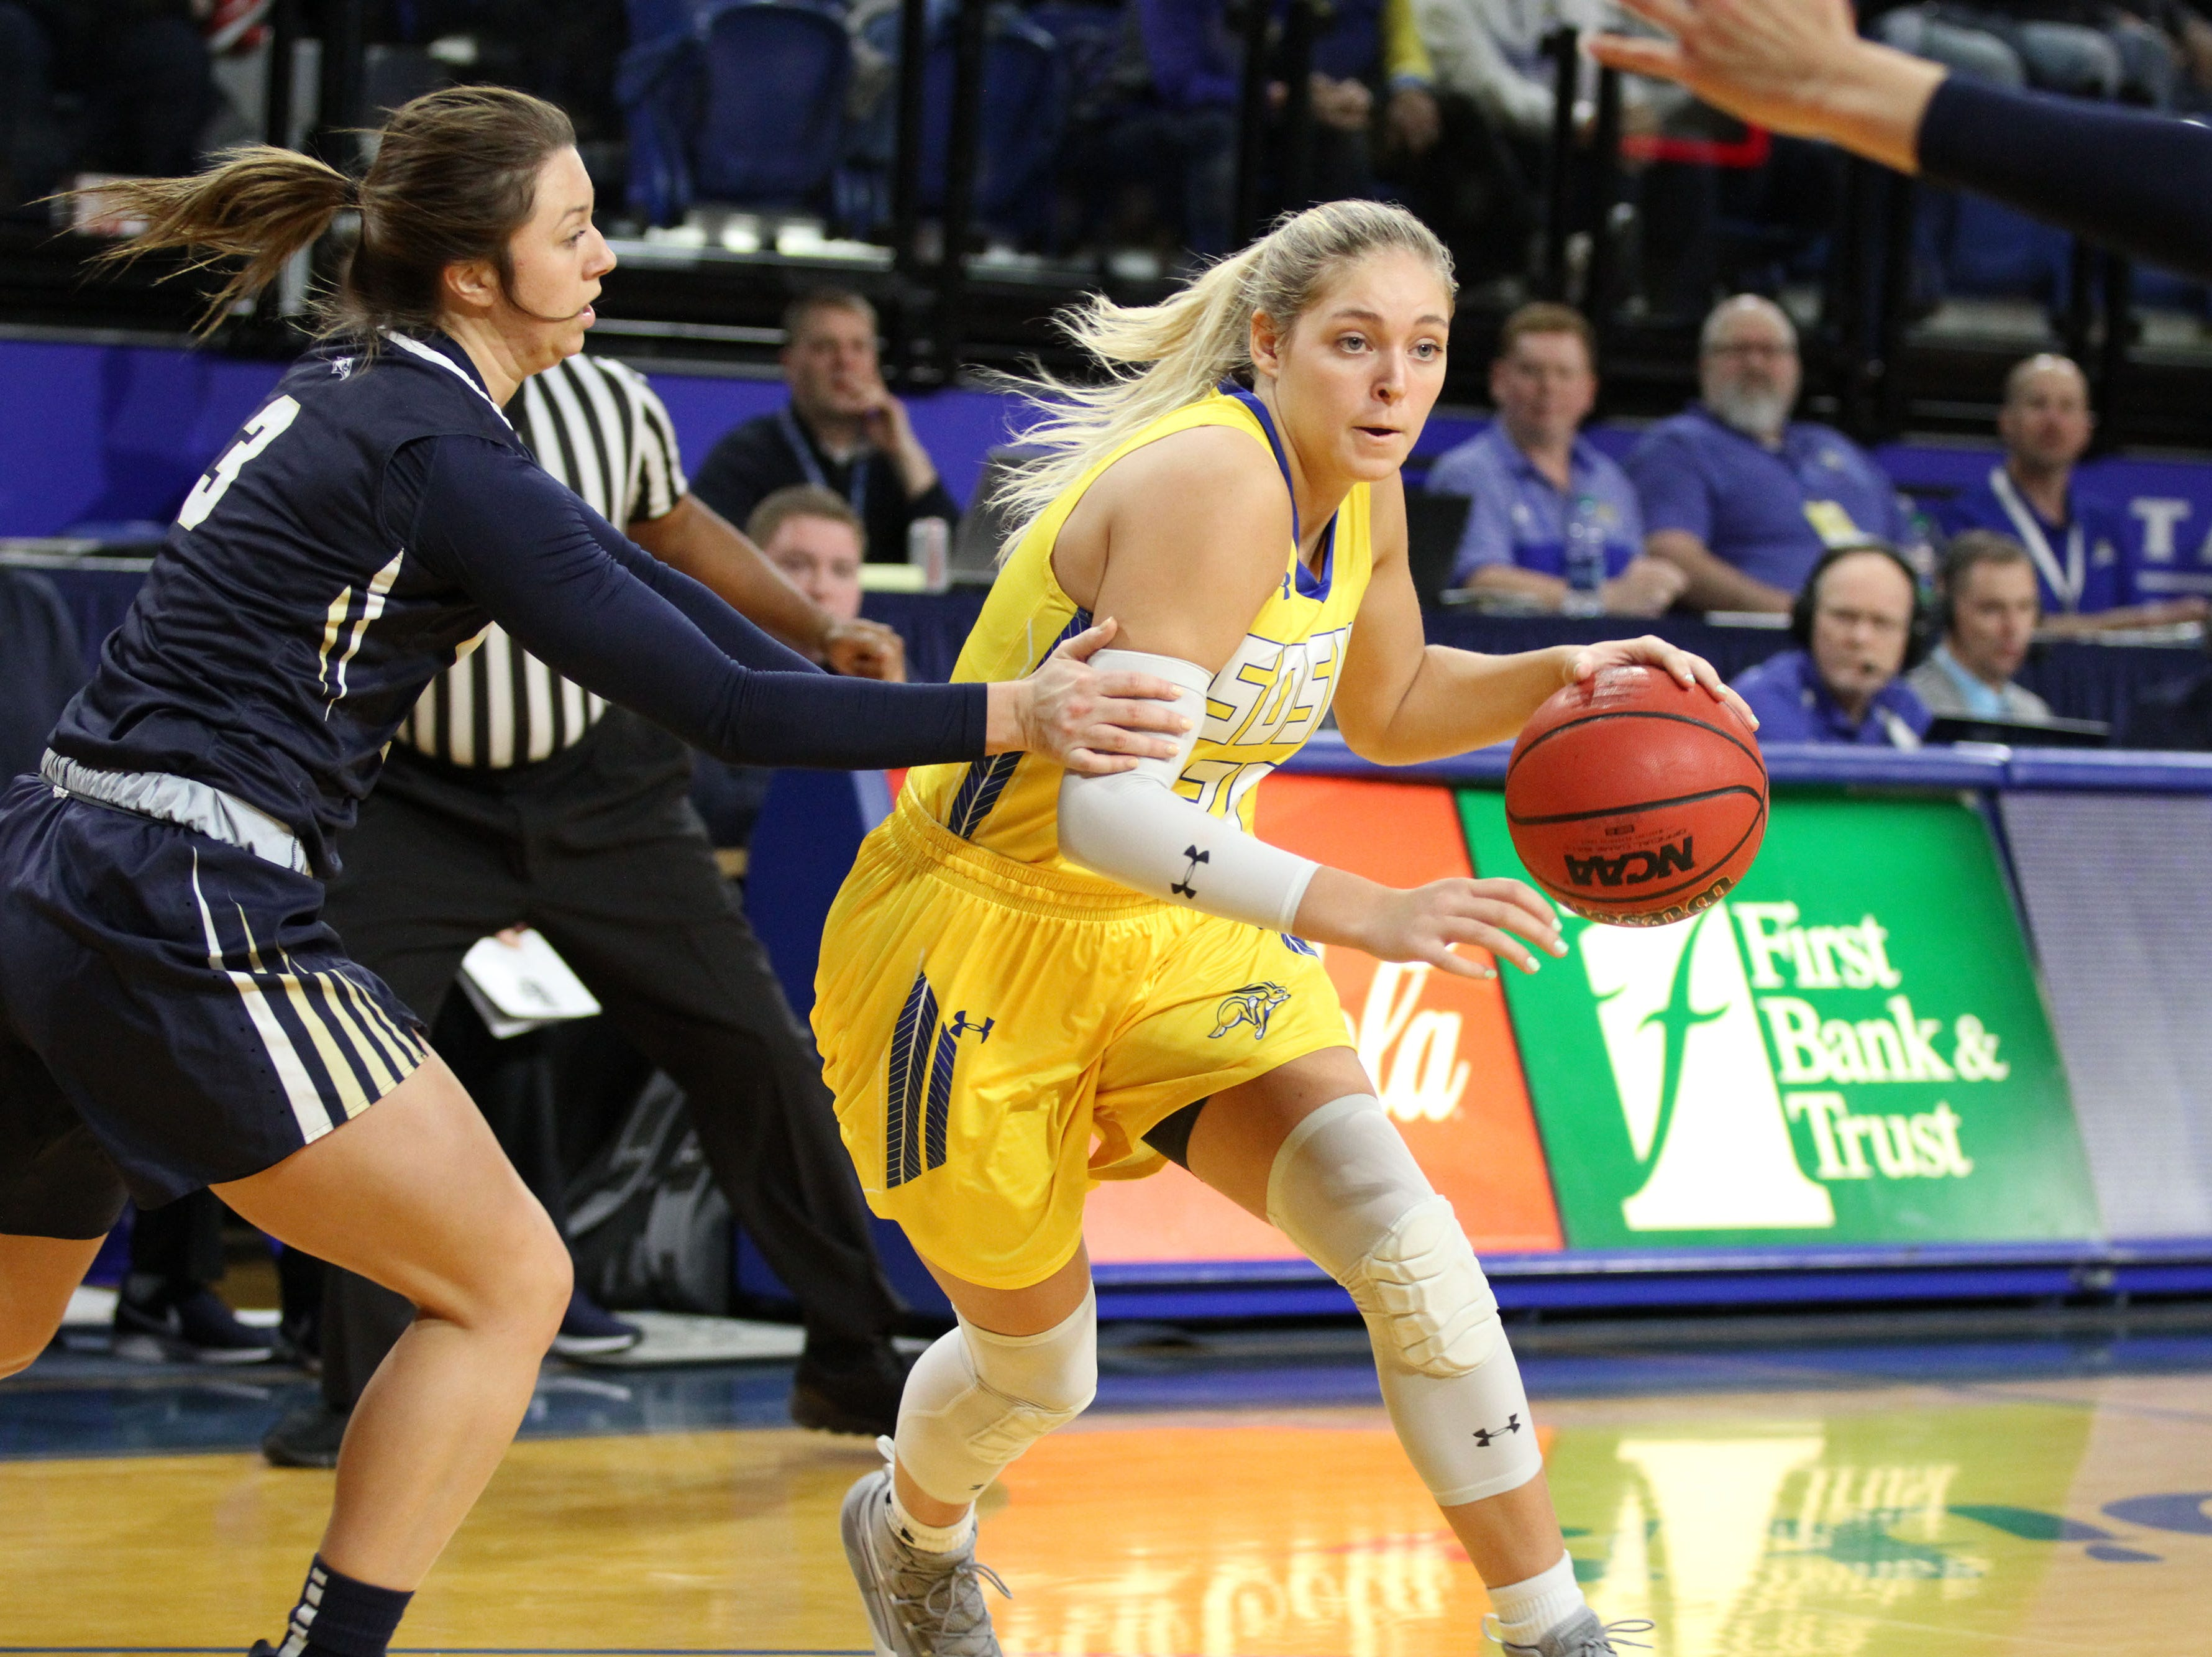 South Dakota State's Sydney Stapleton (35) drives to the bucket past Oral Roberts' Katie Kirkhart during the second quarter of the Jackrabbits' matchup against the Golden Eagles Saturday afternoon at Frost Arena in Brookings.